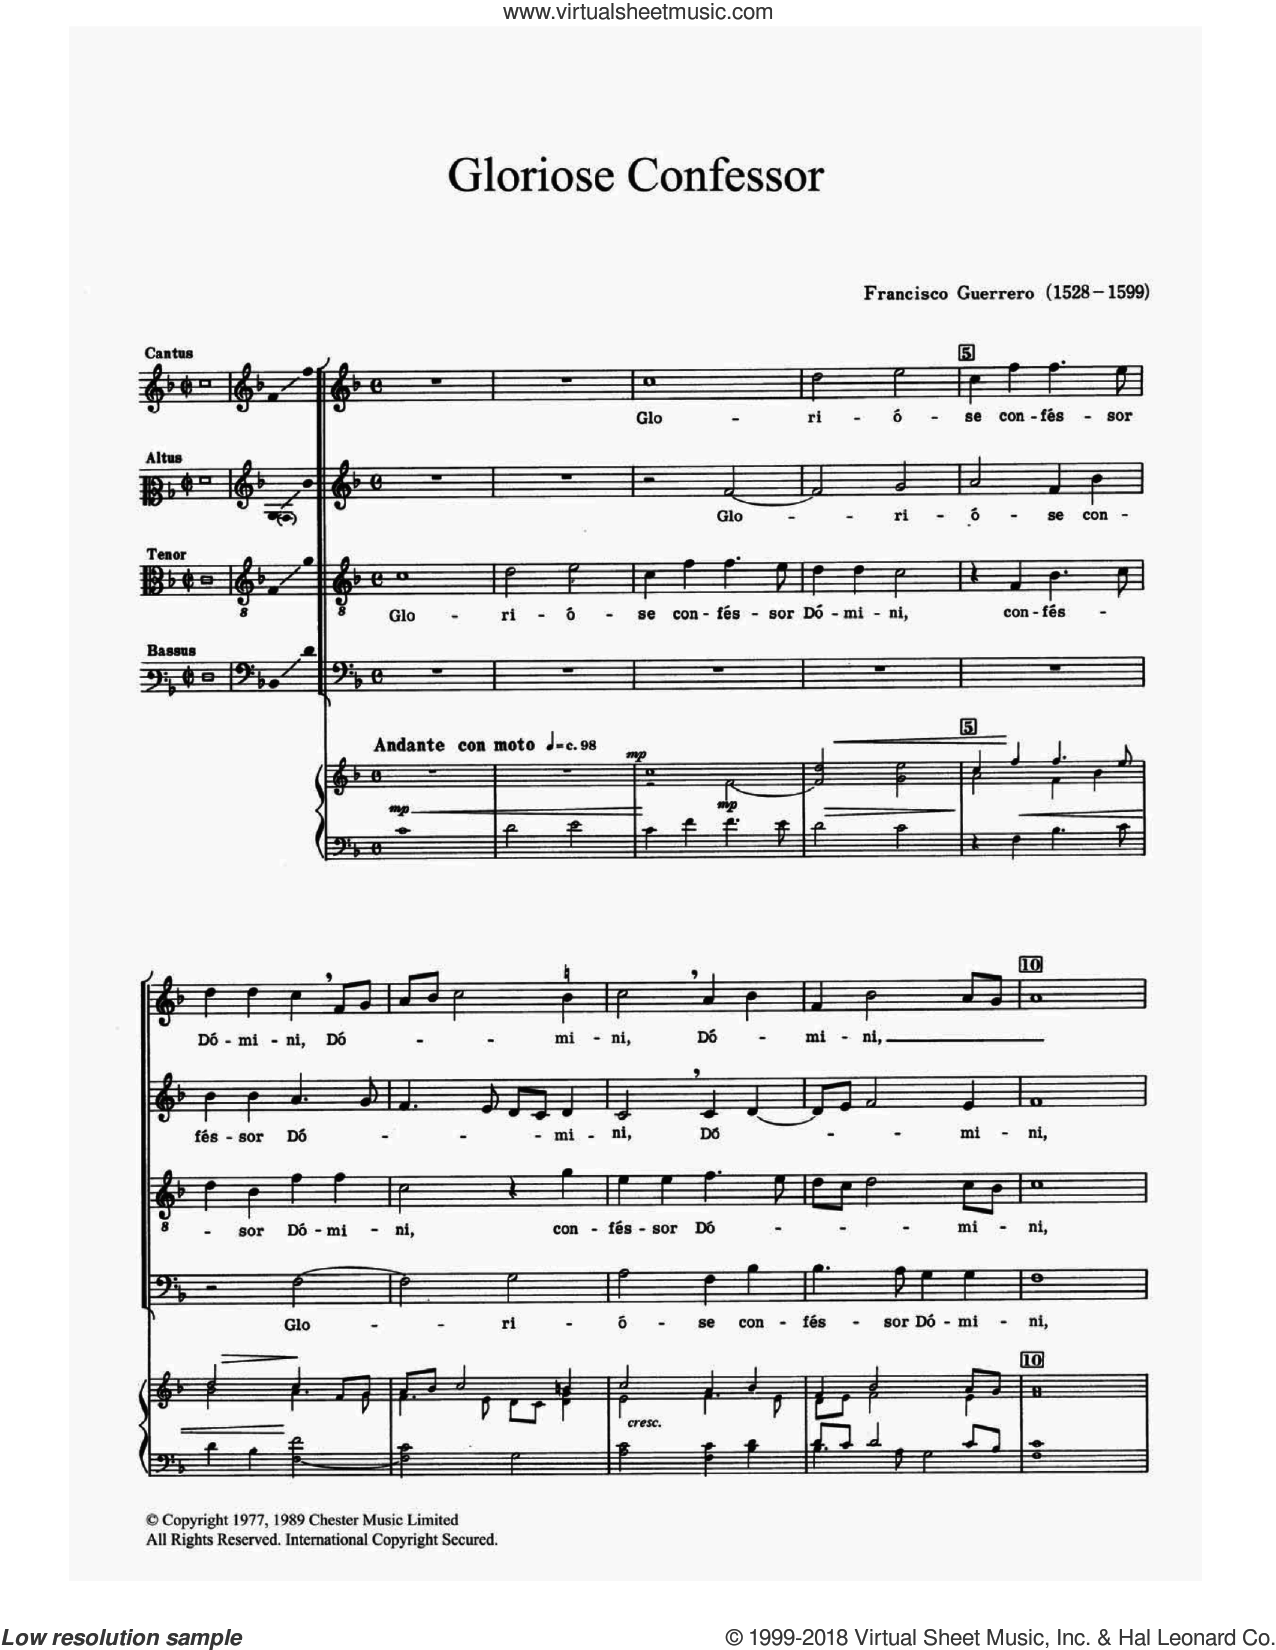 Gloriose Confessor sheet music for choir by Francisco Guerrero, classical score, intermediate skill level